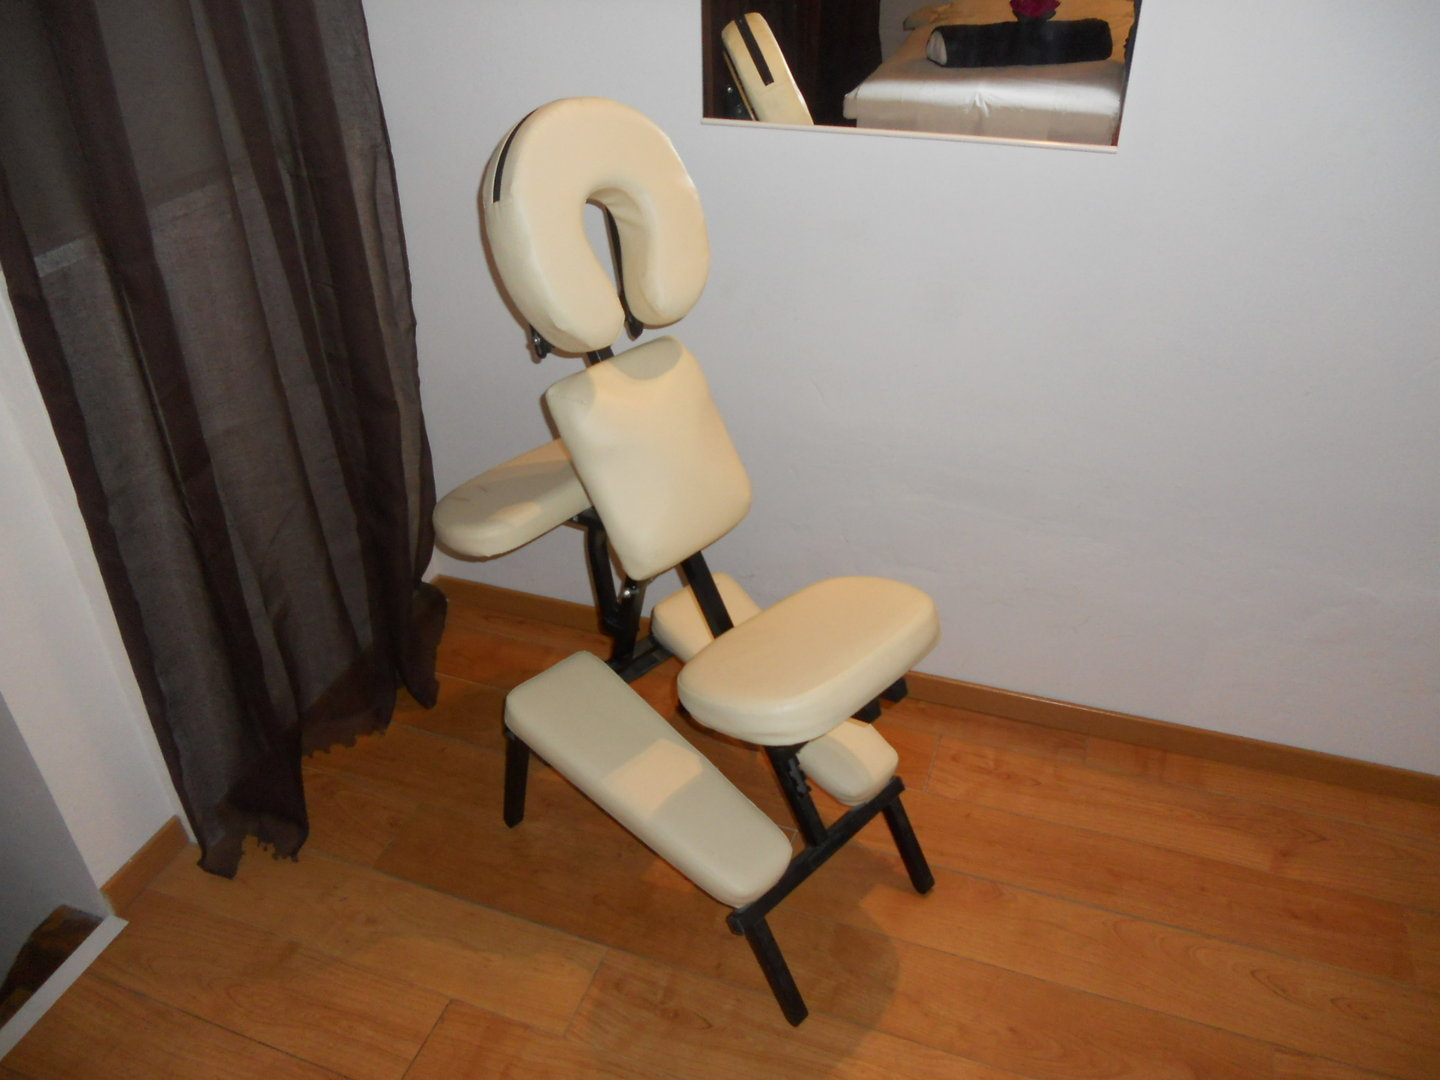 Chaise Amma Assis Massage Amma Assis 30 39 Spot Bien Etre